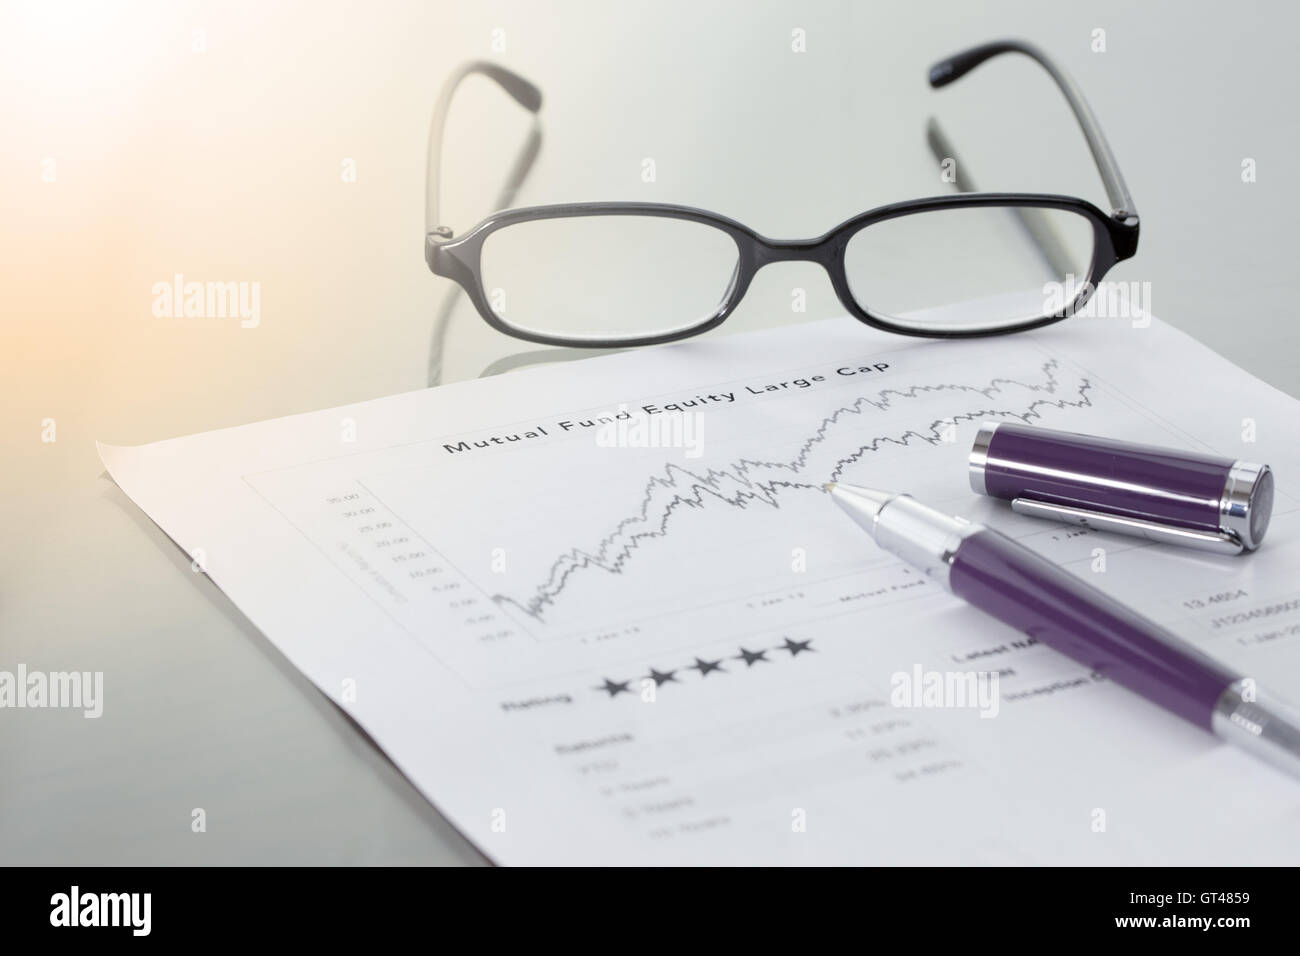 Mutual Fund information with performance line graph and benchmark with pen and glasses. - Stock Image